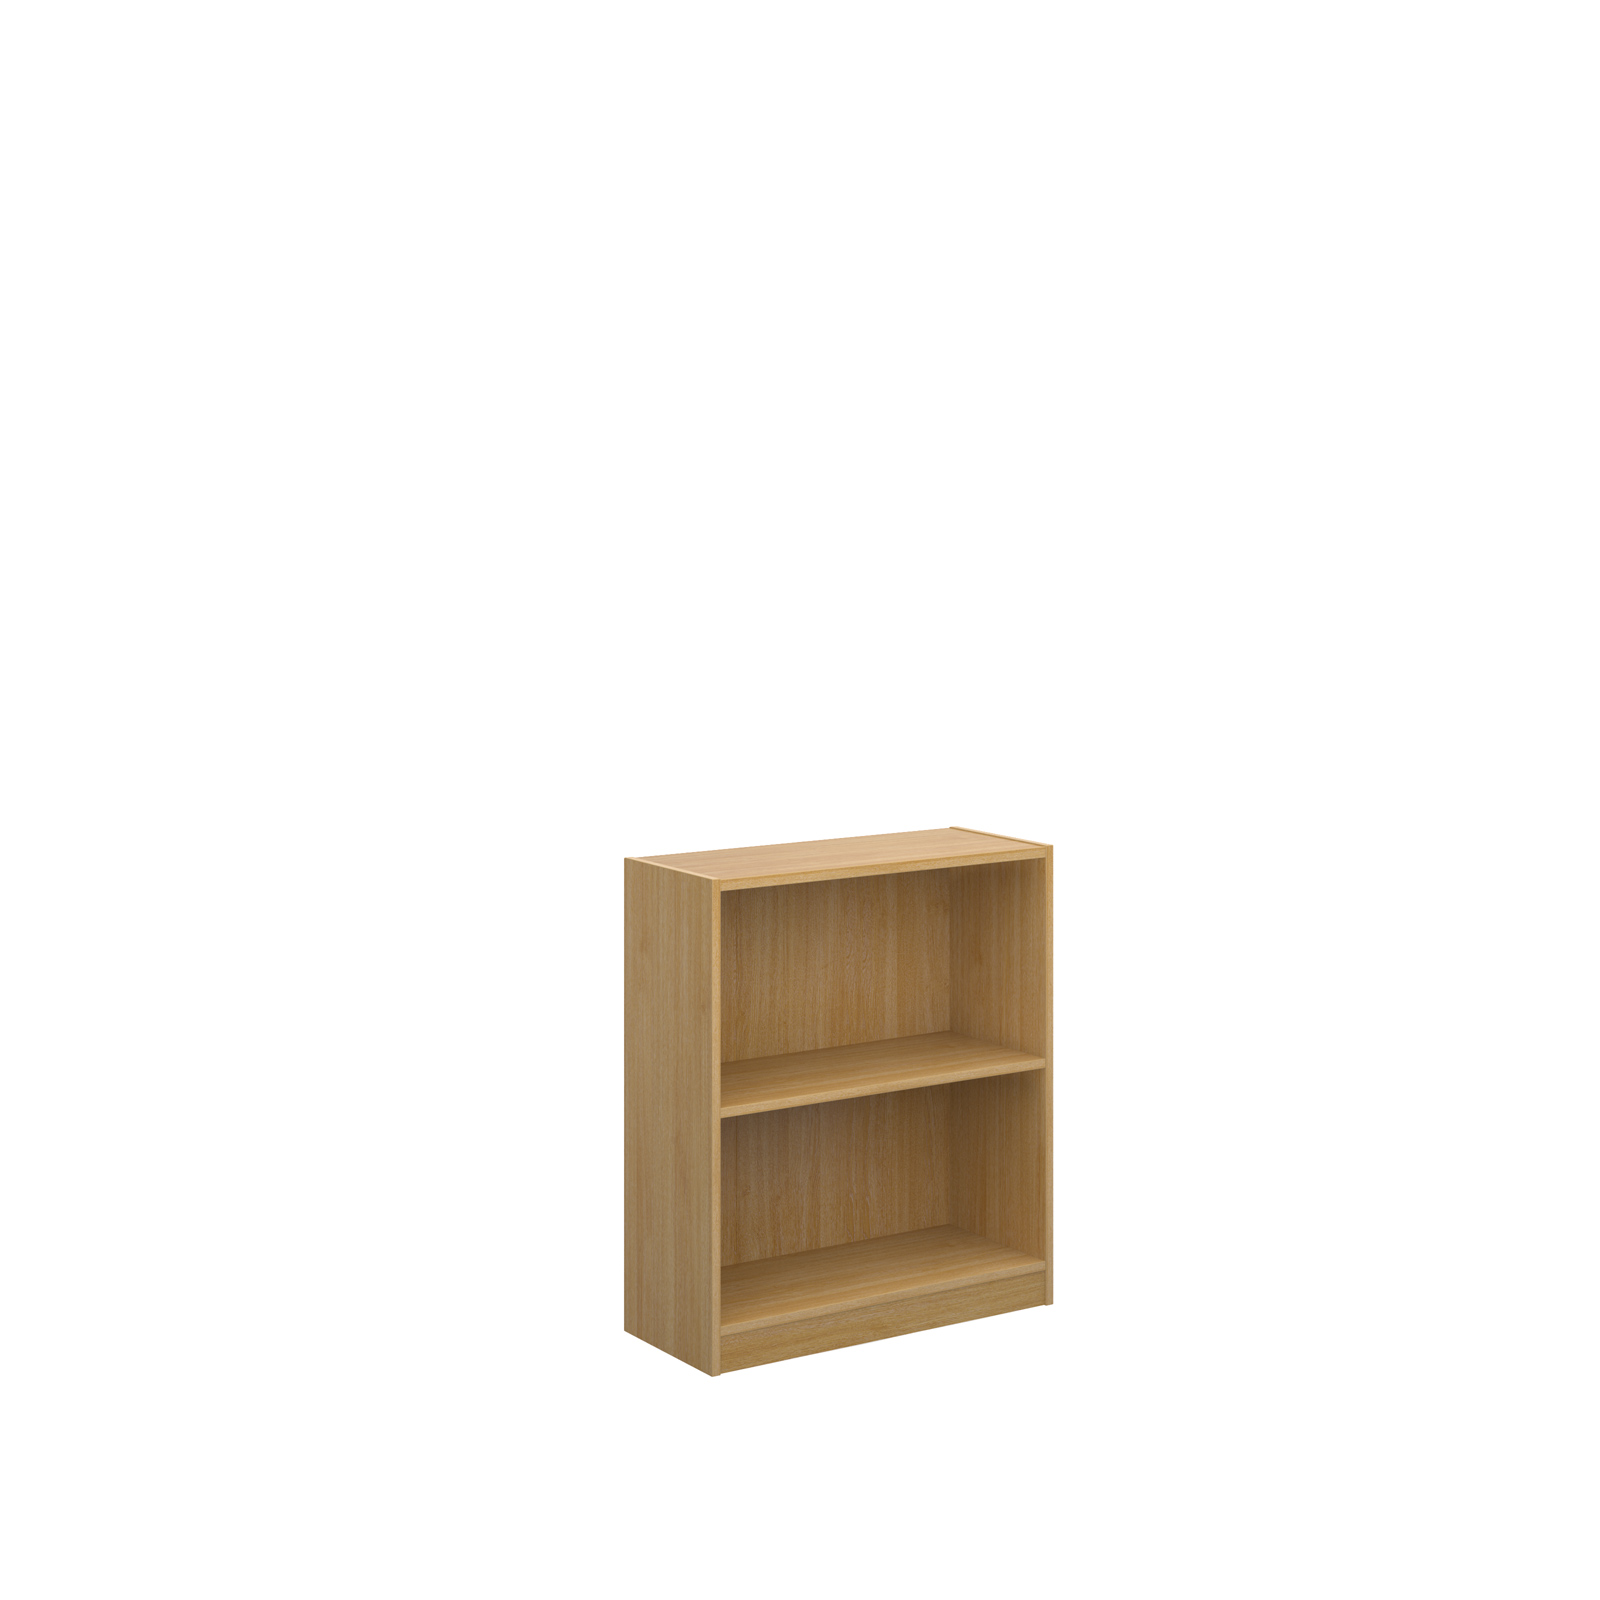 Economy bookcase 720mm high with 1 shelf - oak